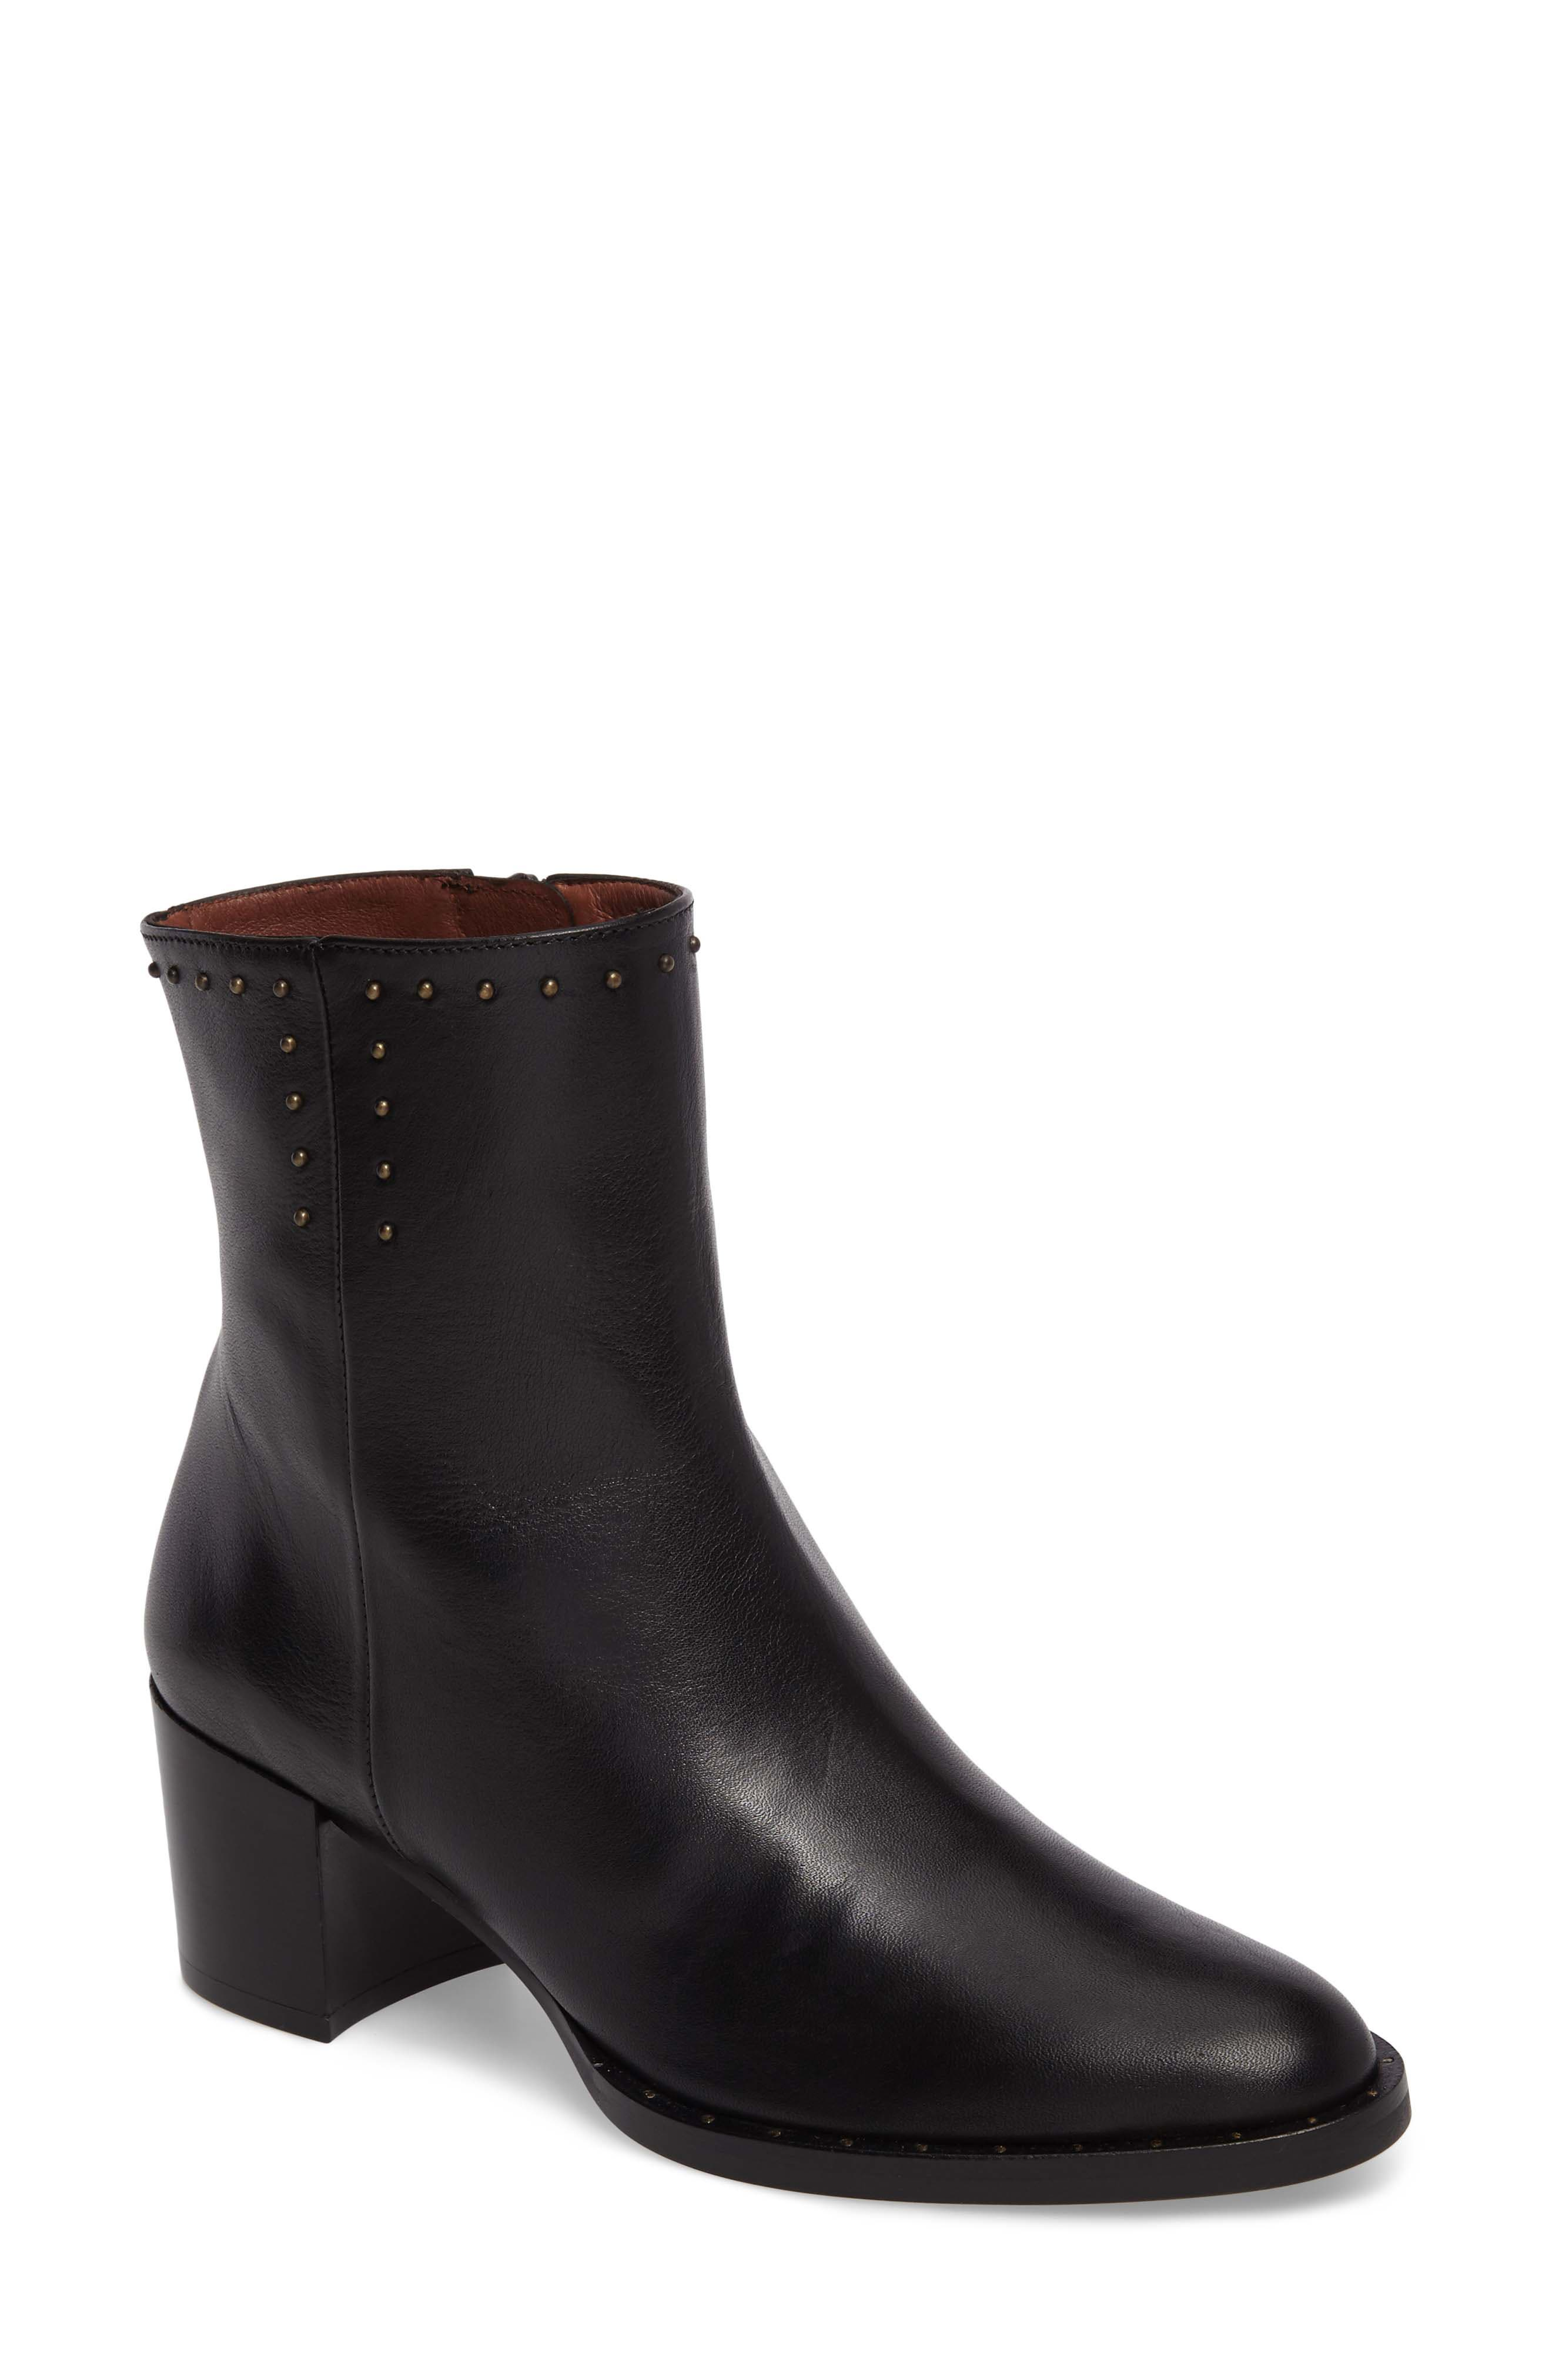 HISPANITAS, Dawn Bootie, Main thumbnail 1, color, SOHO BLACK LEATHER